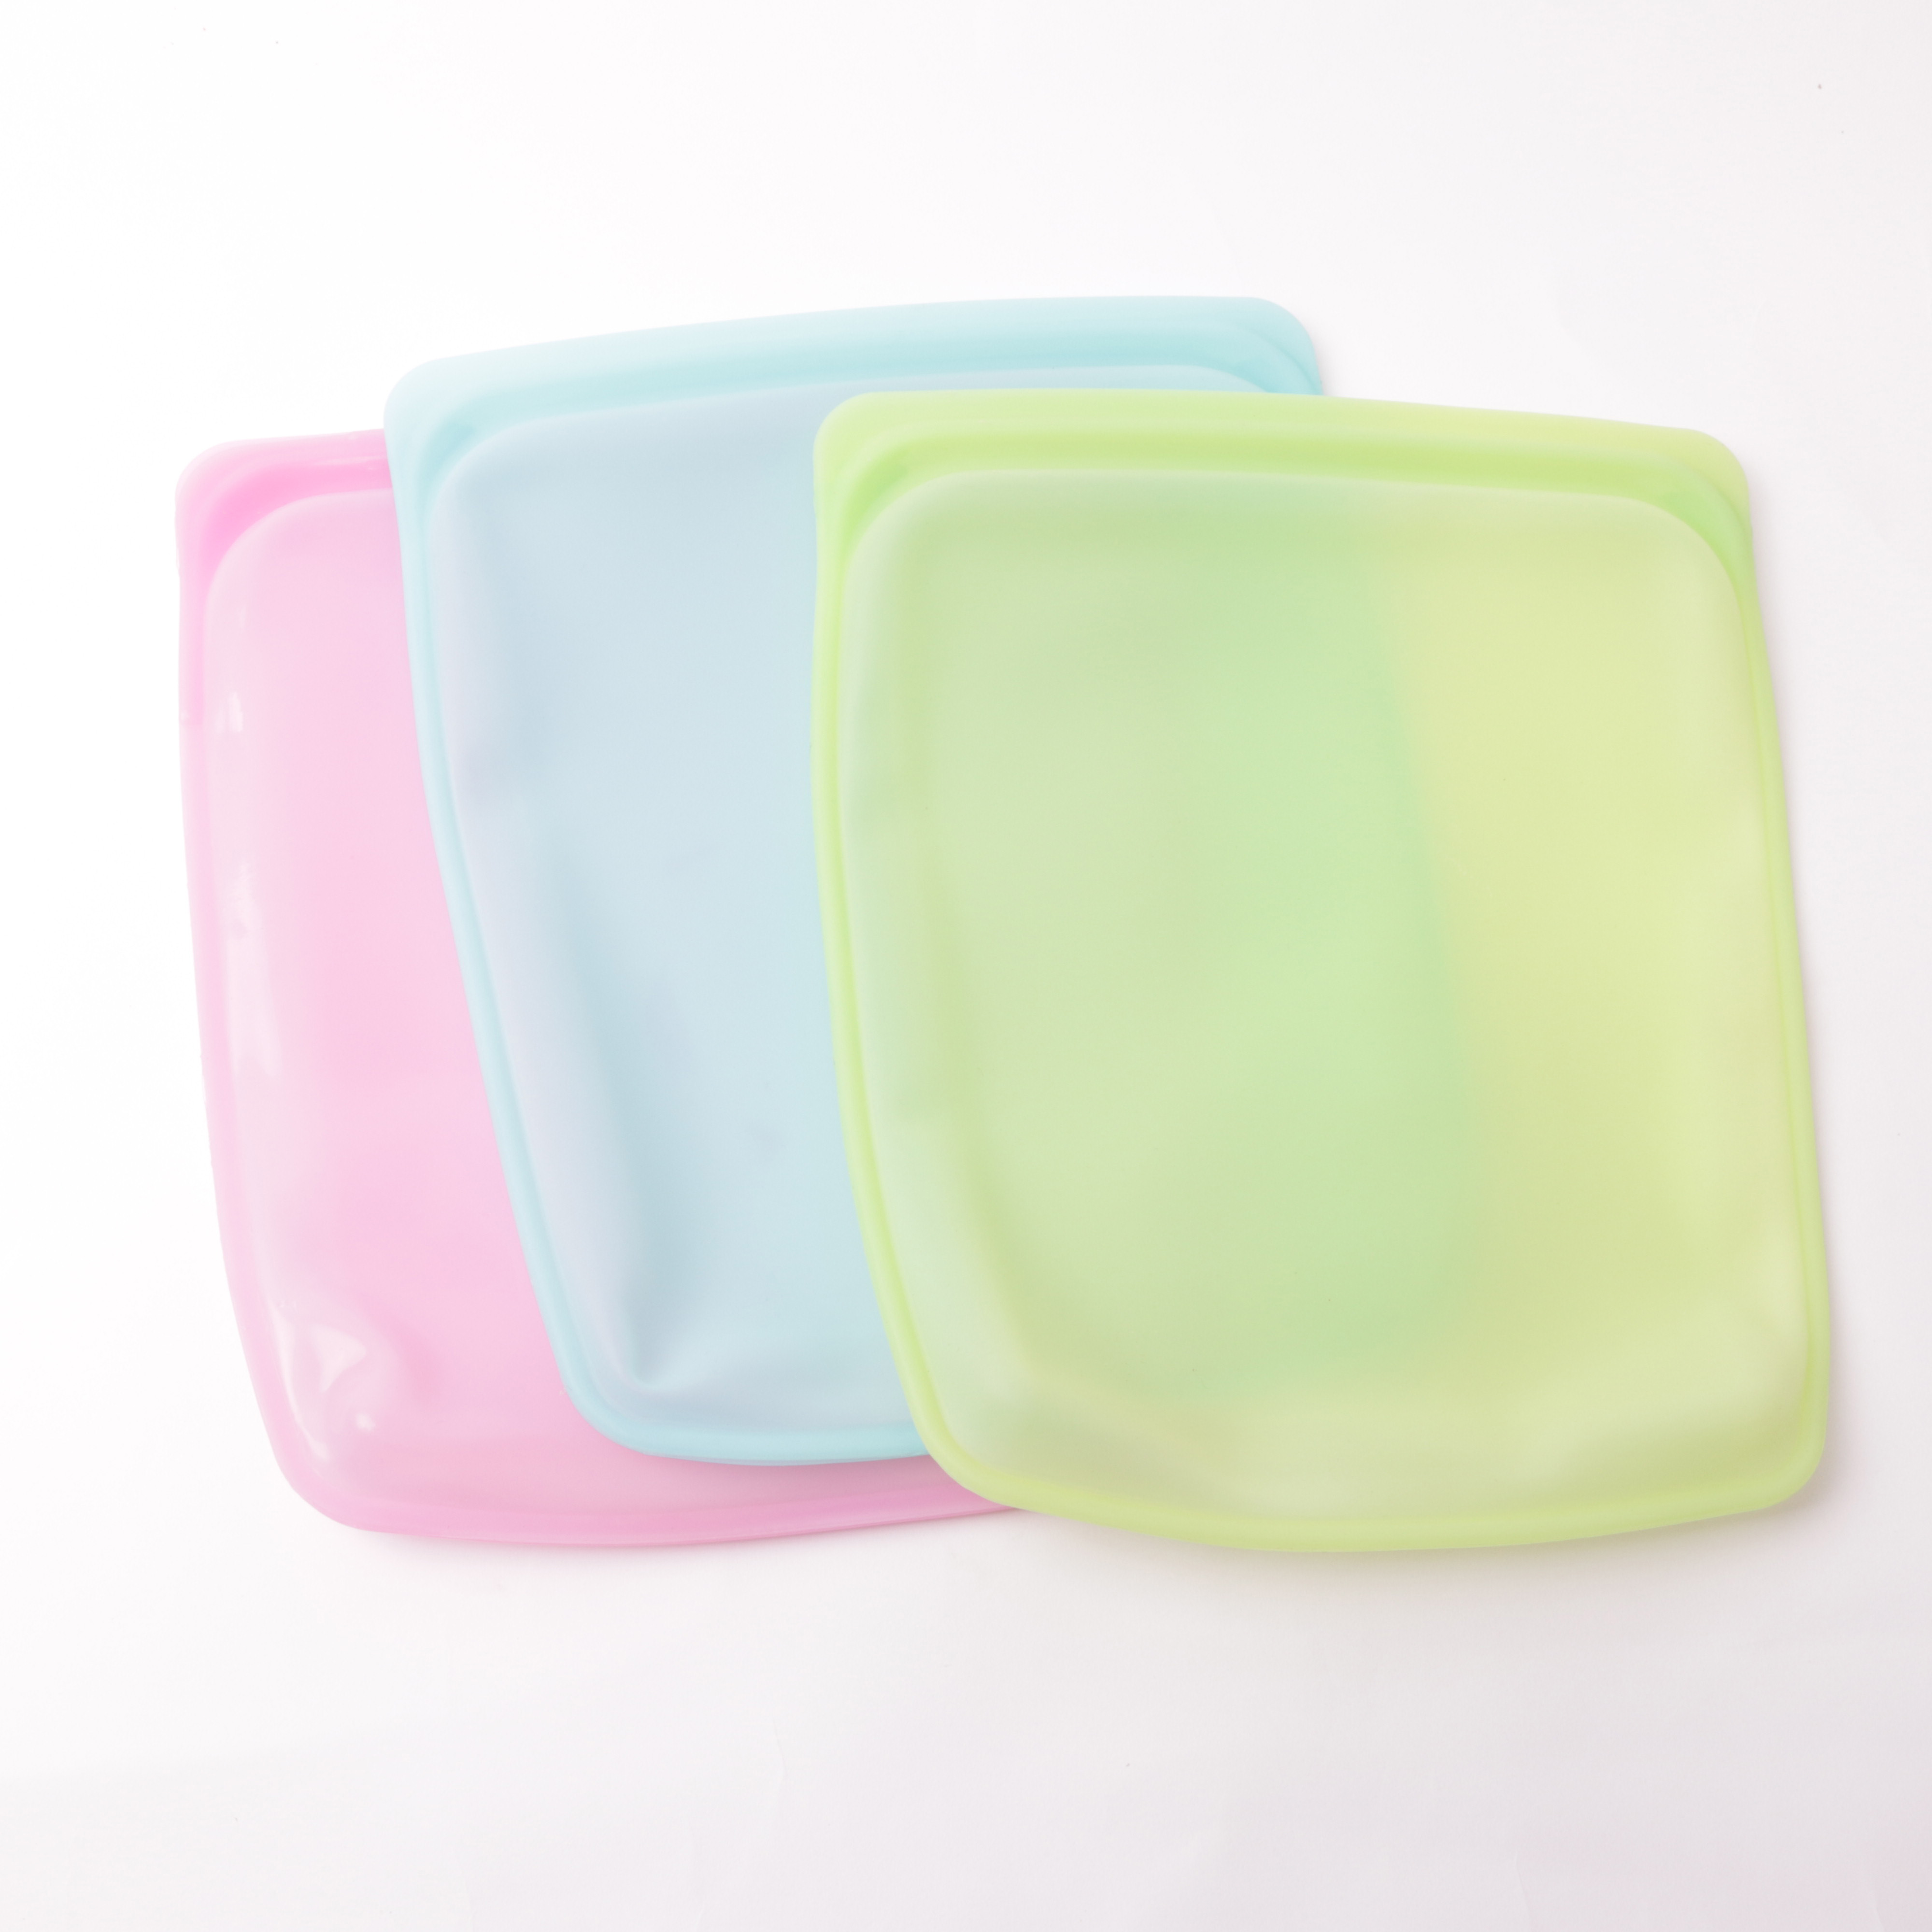 New Item 3 Pack Silicone Reusable Food Storage Bag Set Reusable Zipper Silicone Food Bag